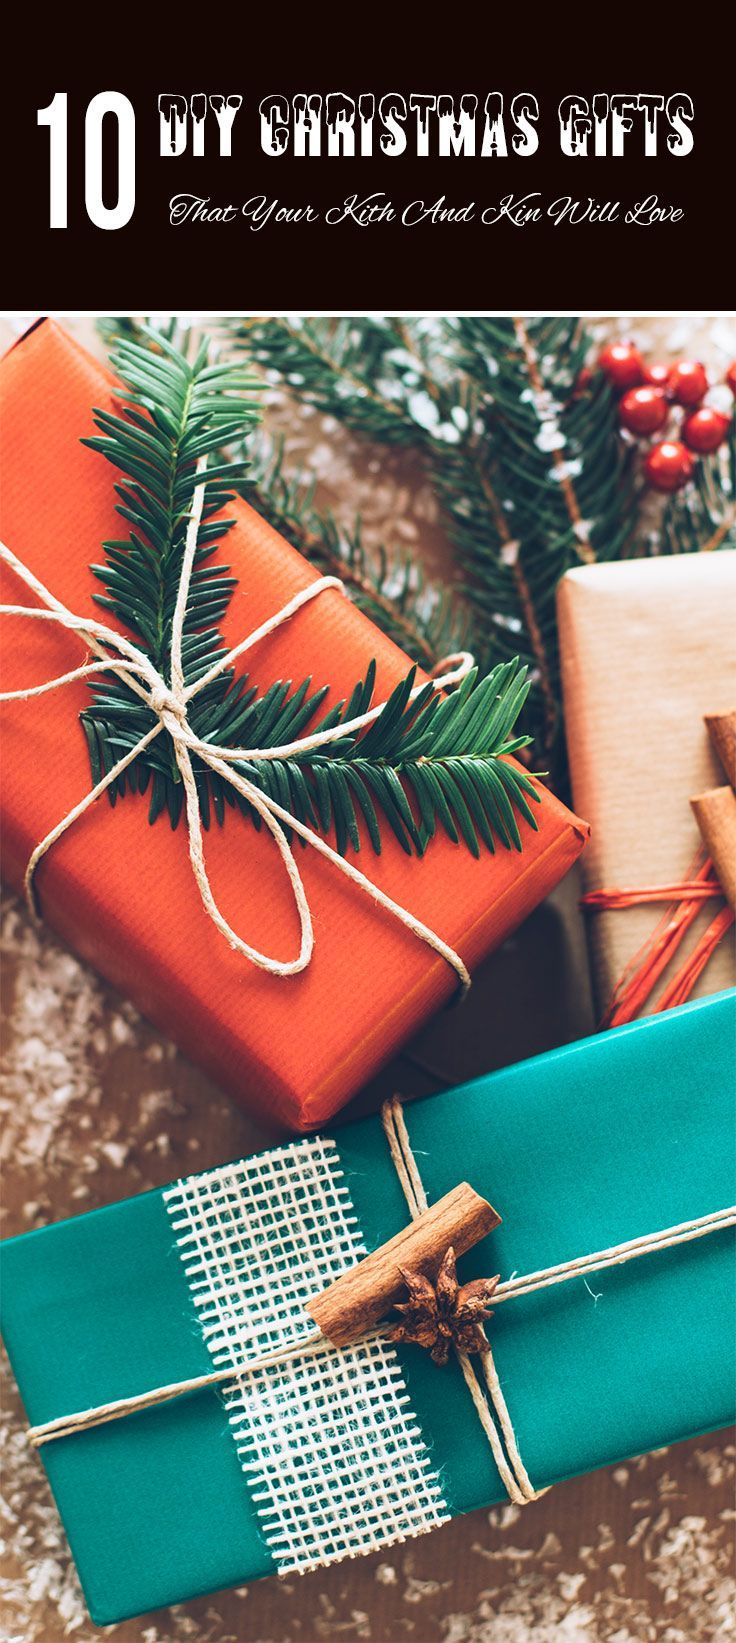 10 DIY Christmas Gifts That Your Kith And Kin Will Love